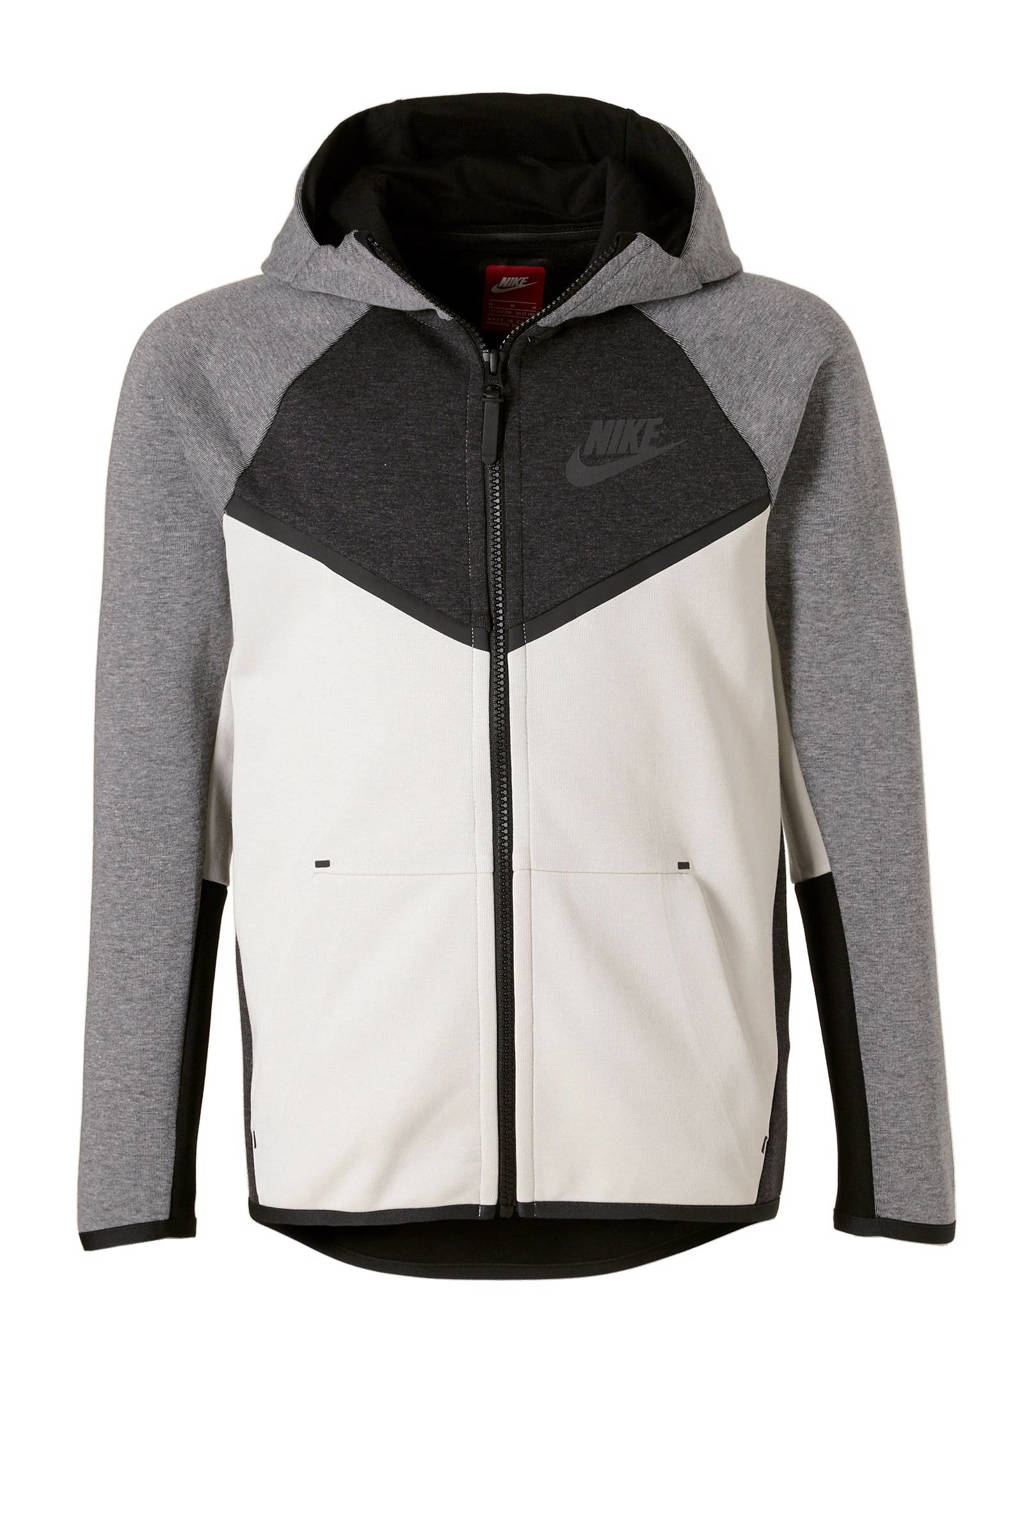 60cbff7a1db5 Nike Tech fleece vest